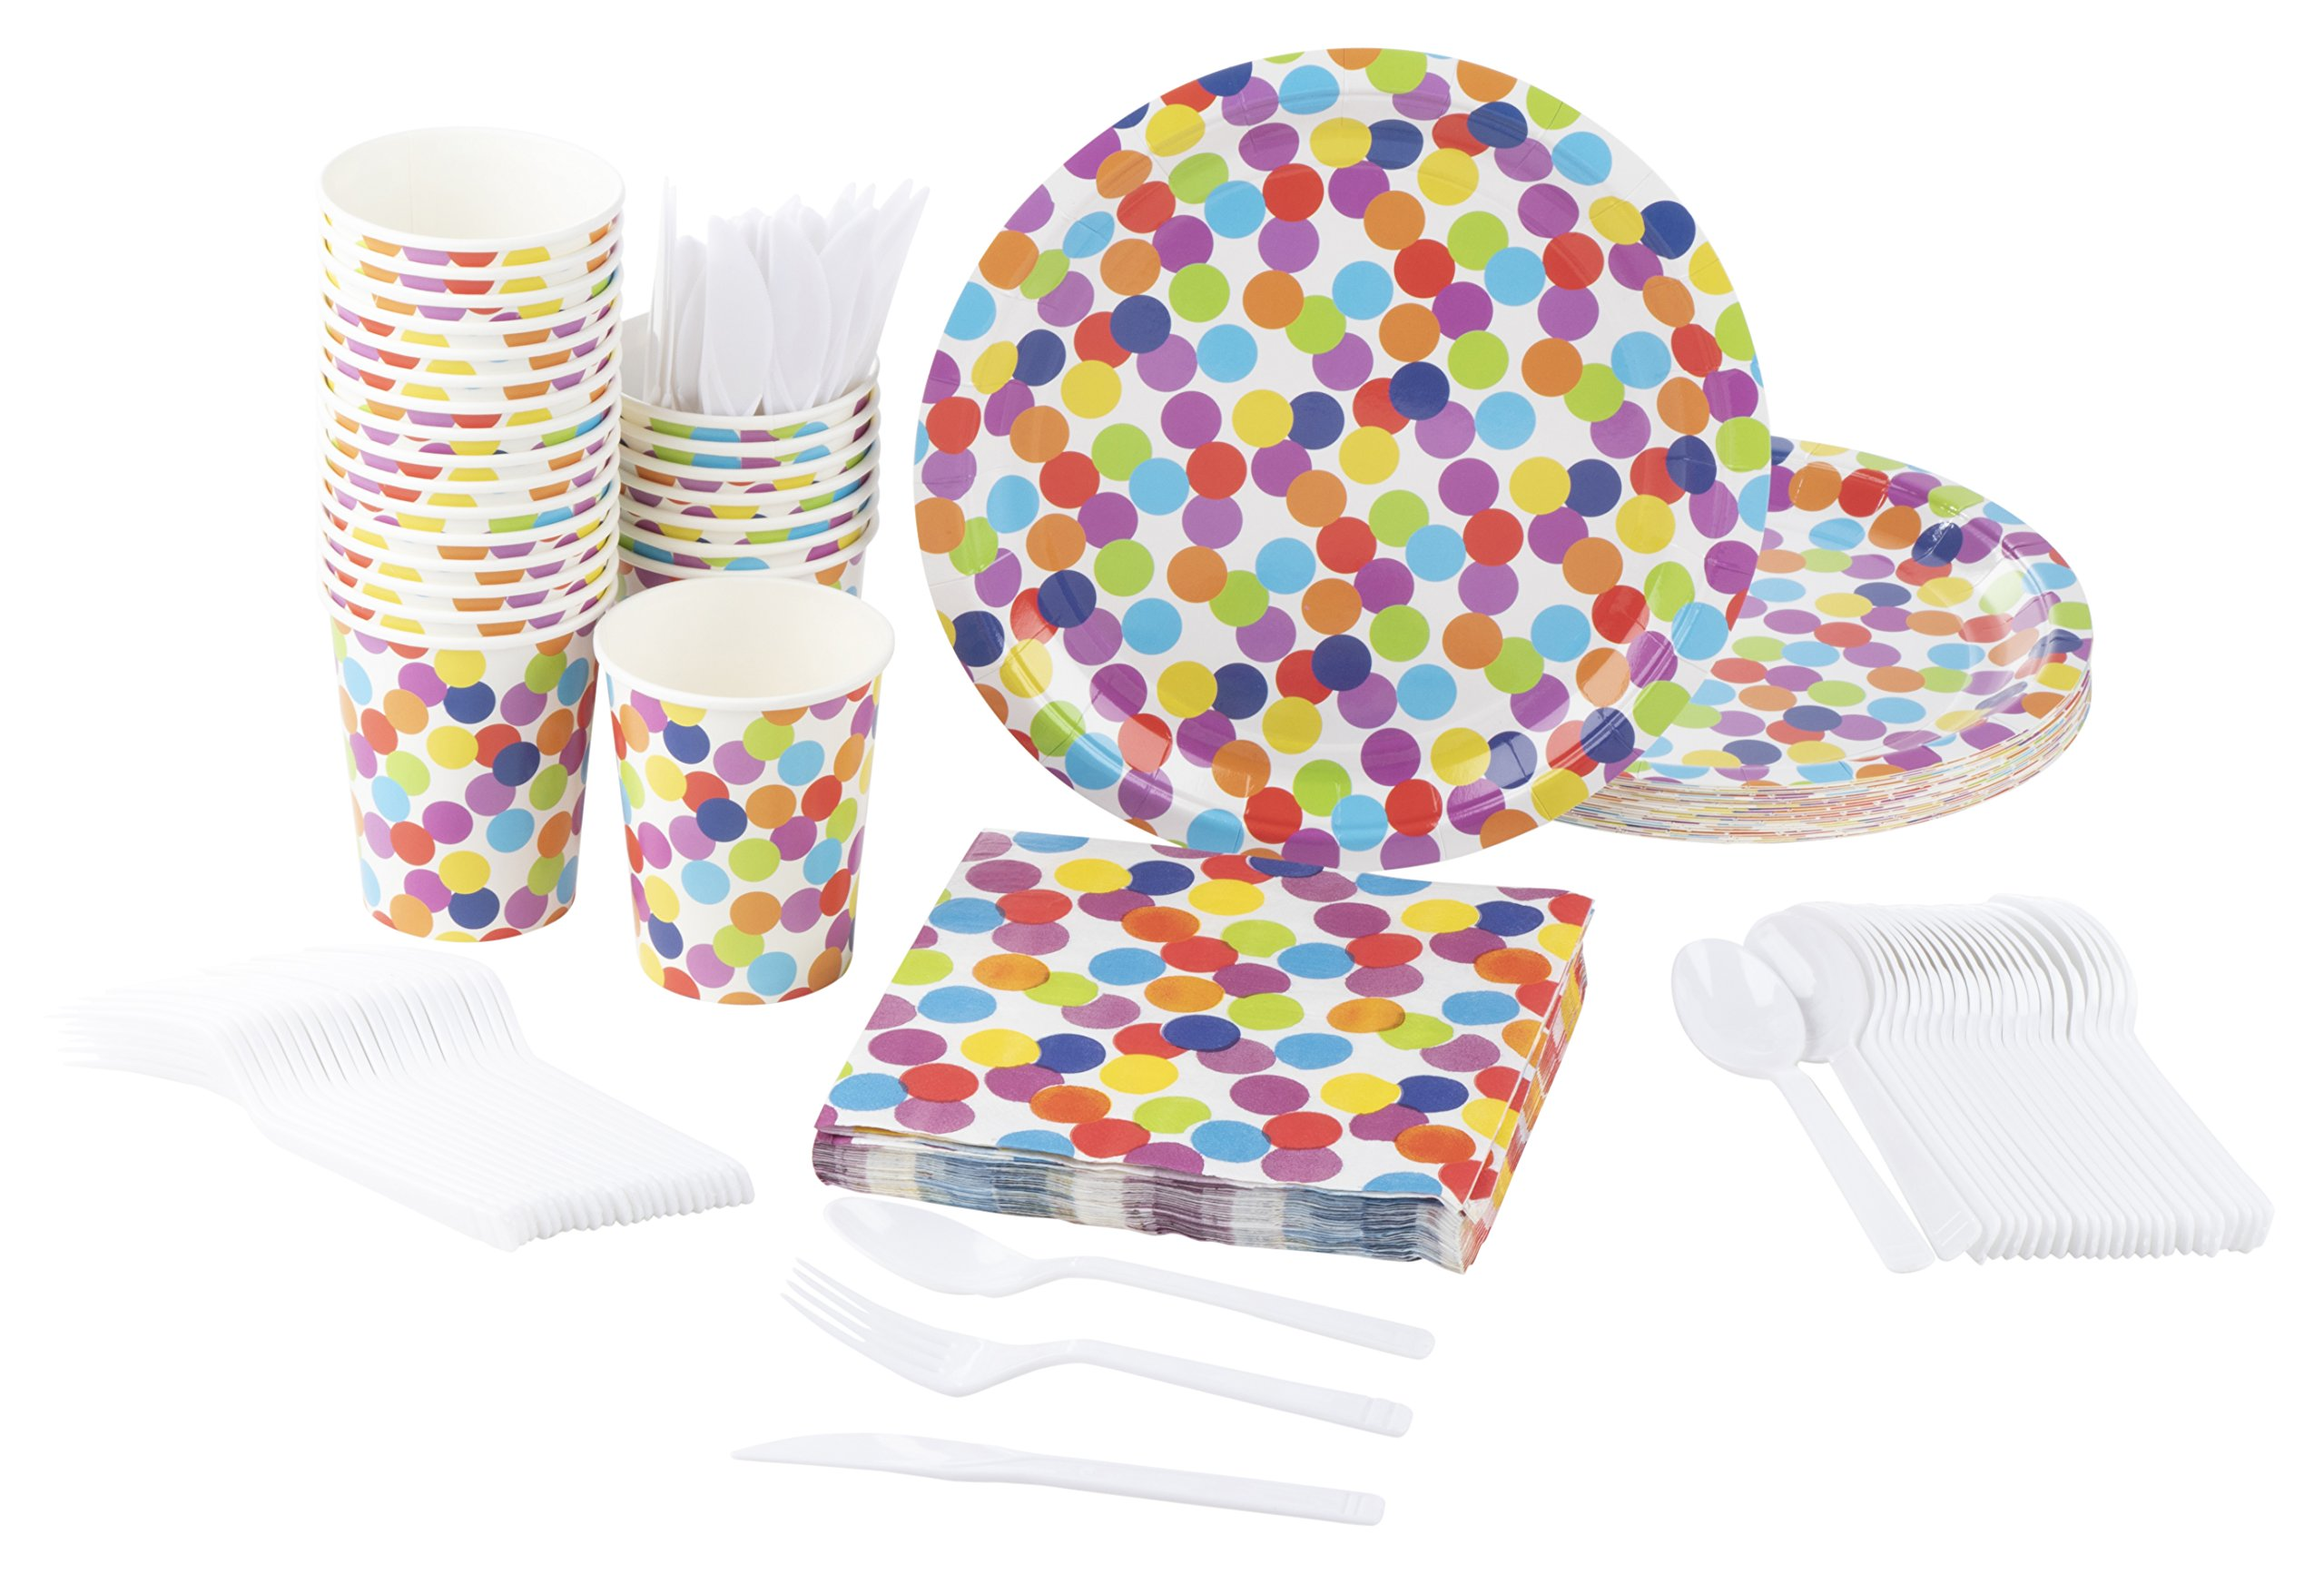 Disposable Dinnerware Set - Serves 24 - Polka Dot Party Supplies for Kids Birthdays - Includes Plastic Knives, Spoons, Forks, Paper Plates, Napkins, Cups